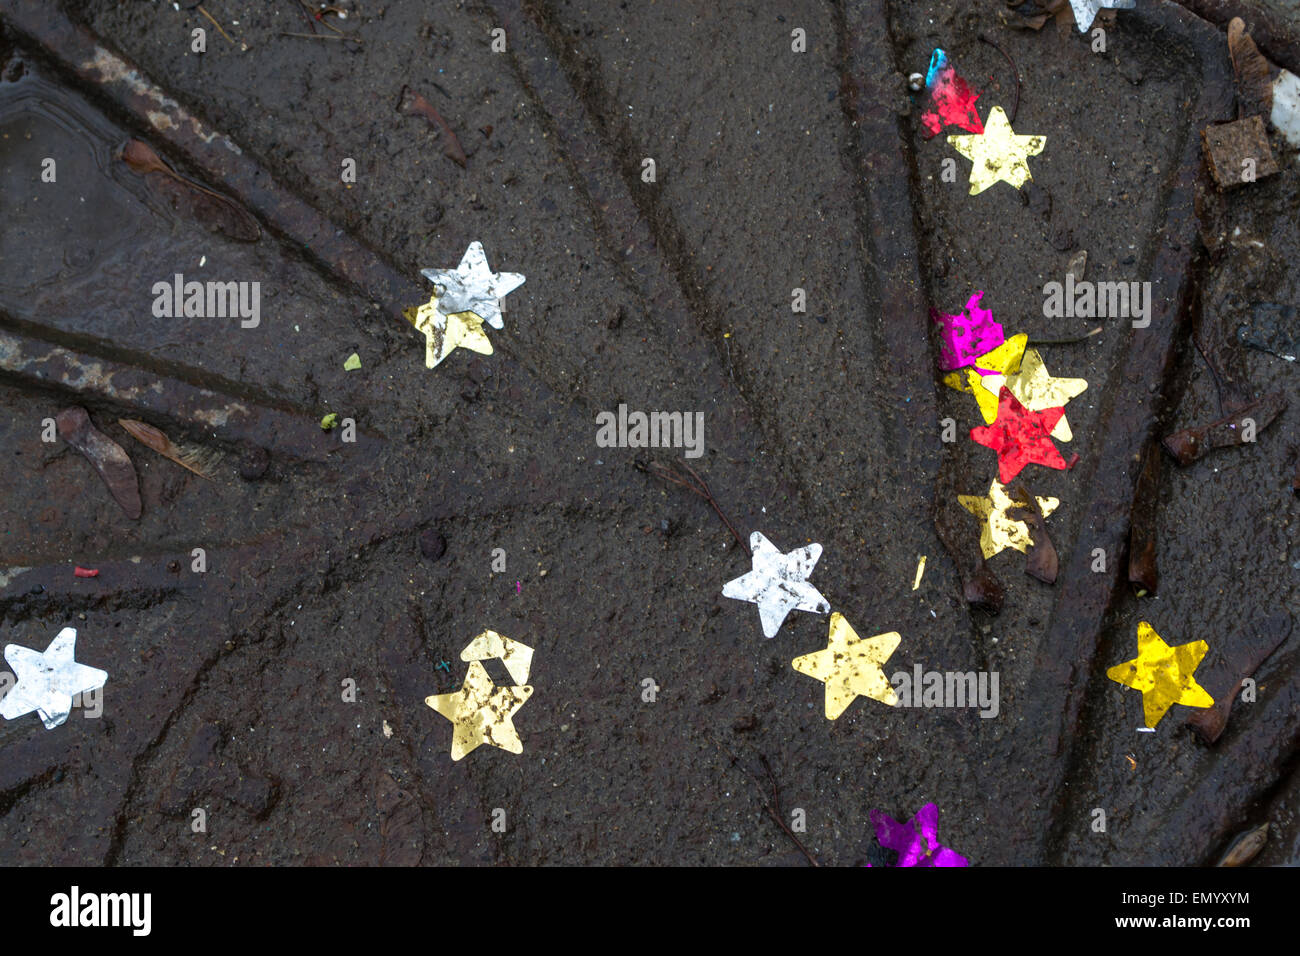 Colored stars in dirty water on top of a dark metal manhole cover - Stock Image